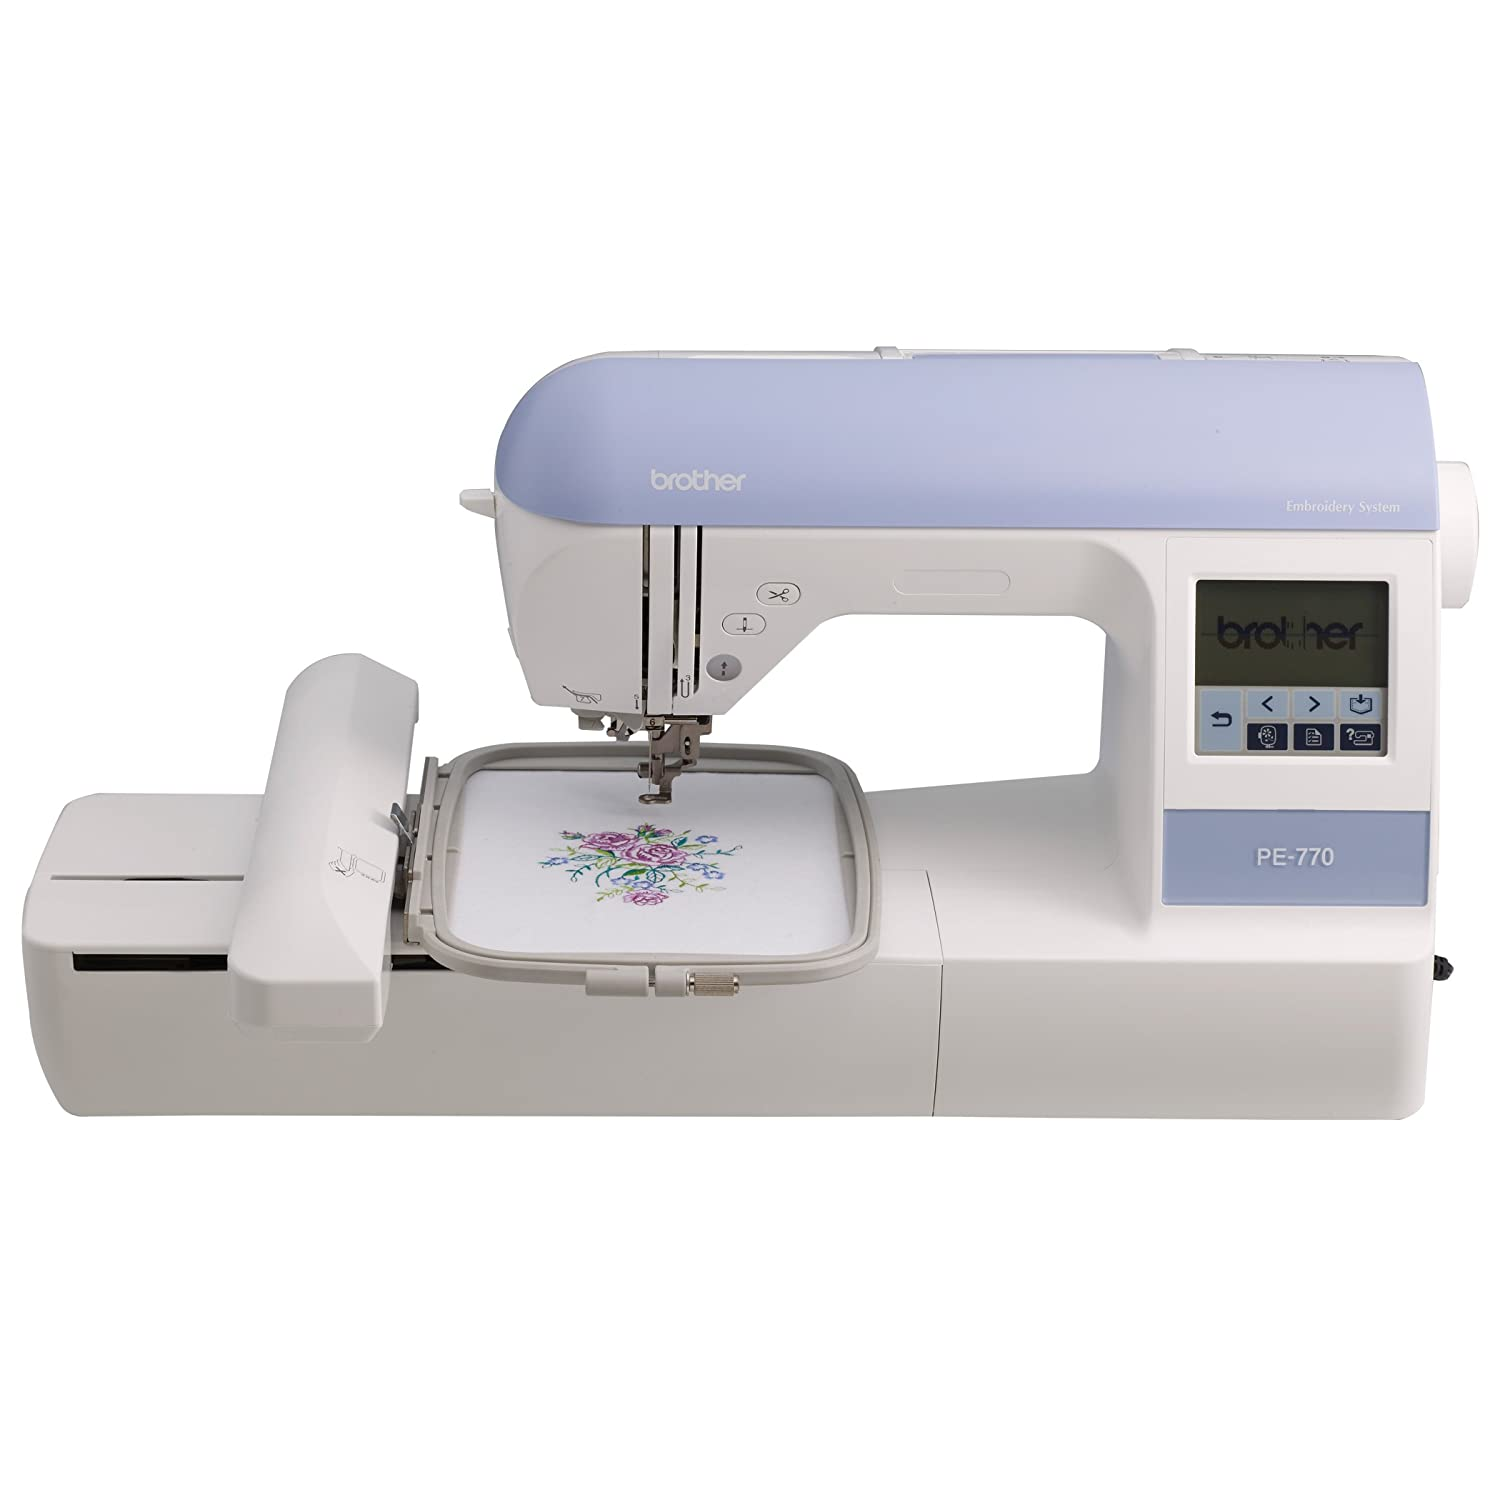 Brother PE770 5×7 inch Embroidery-only machine with built-in memory, USB port, 6 lettering fonts and 136 built-in designs